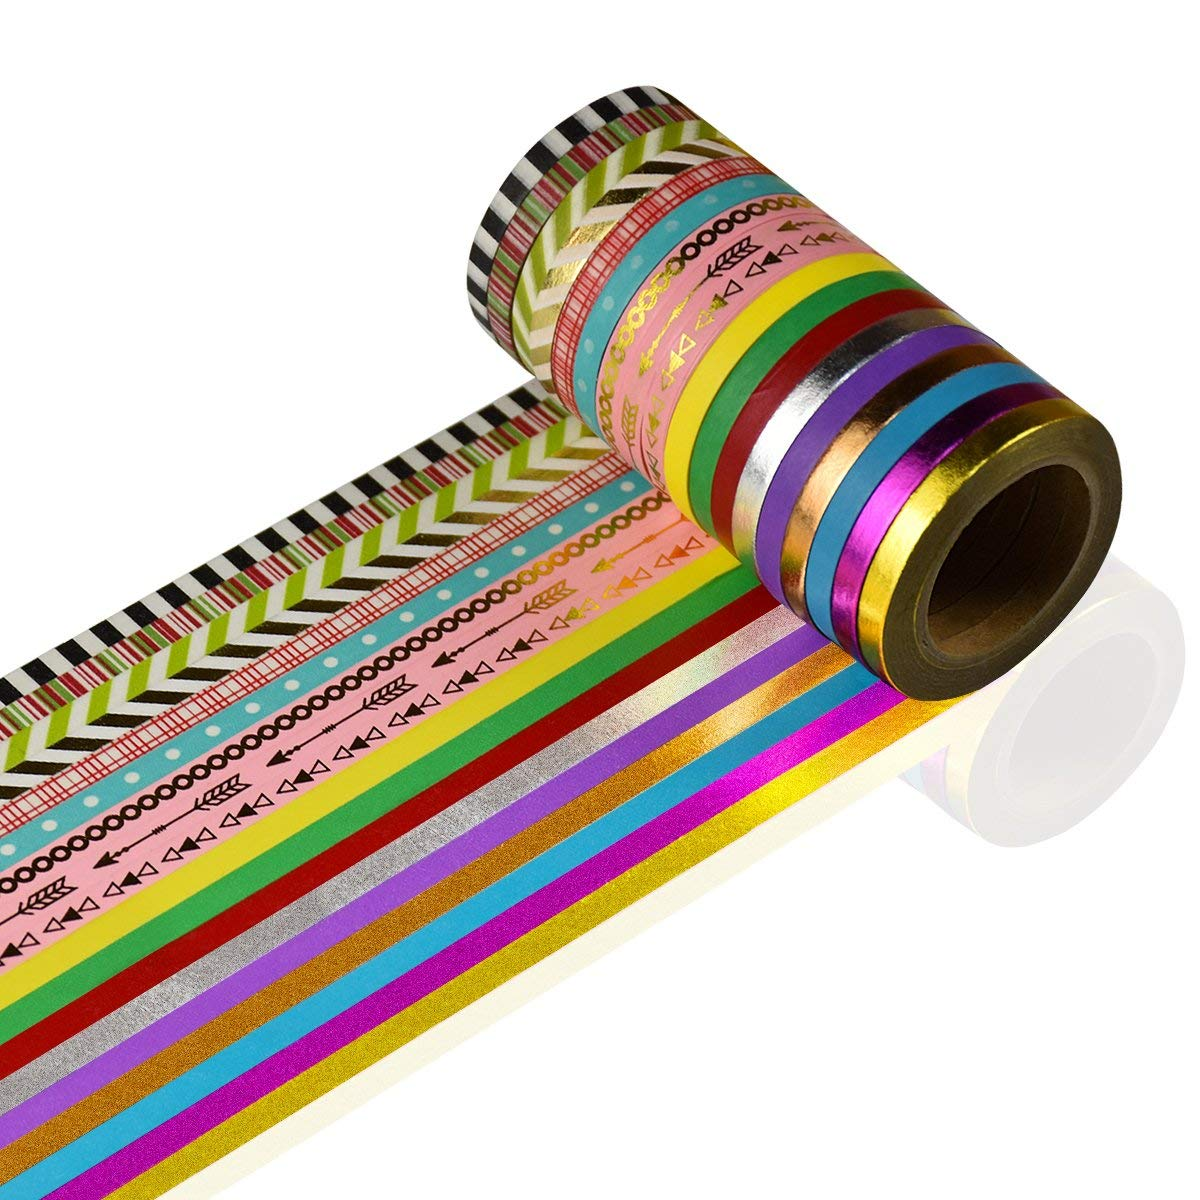 Washi Tape Set 18 Rolls All Girls Favorite For Arts and Crafts Masking Decorative tape DIY Scrapbooking Crafts Creative Re-positional Multi-purpose (0.2inch W 32.8ft L)